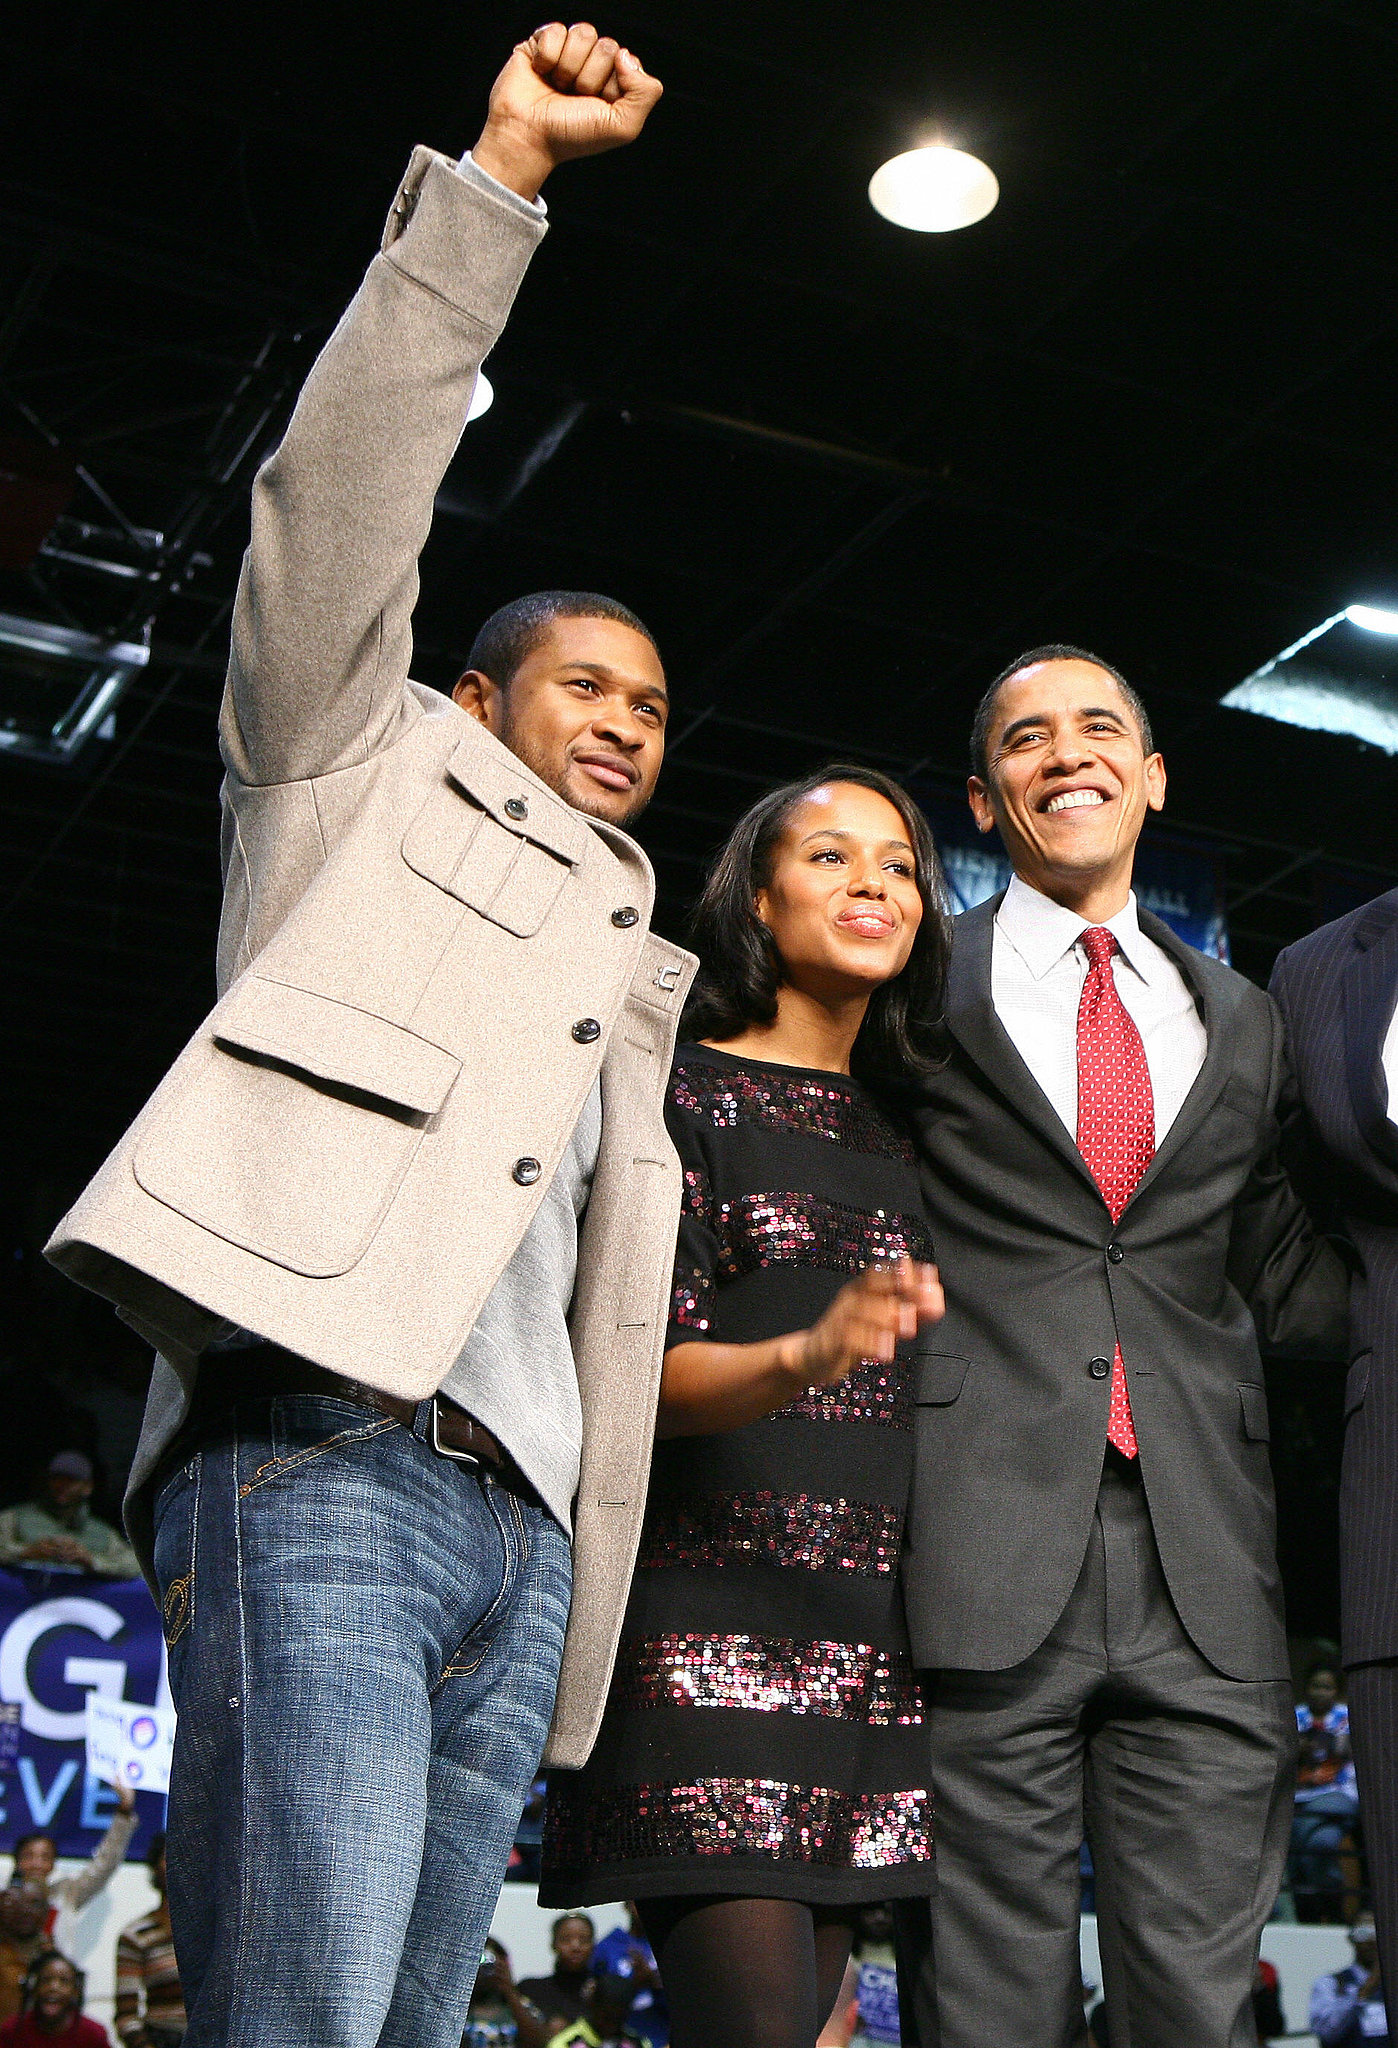 Kerry Washington stood with President Obama and Usher during a rally in South Carolina in January 2008.